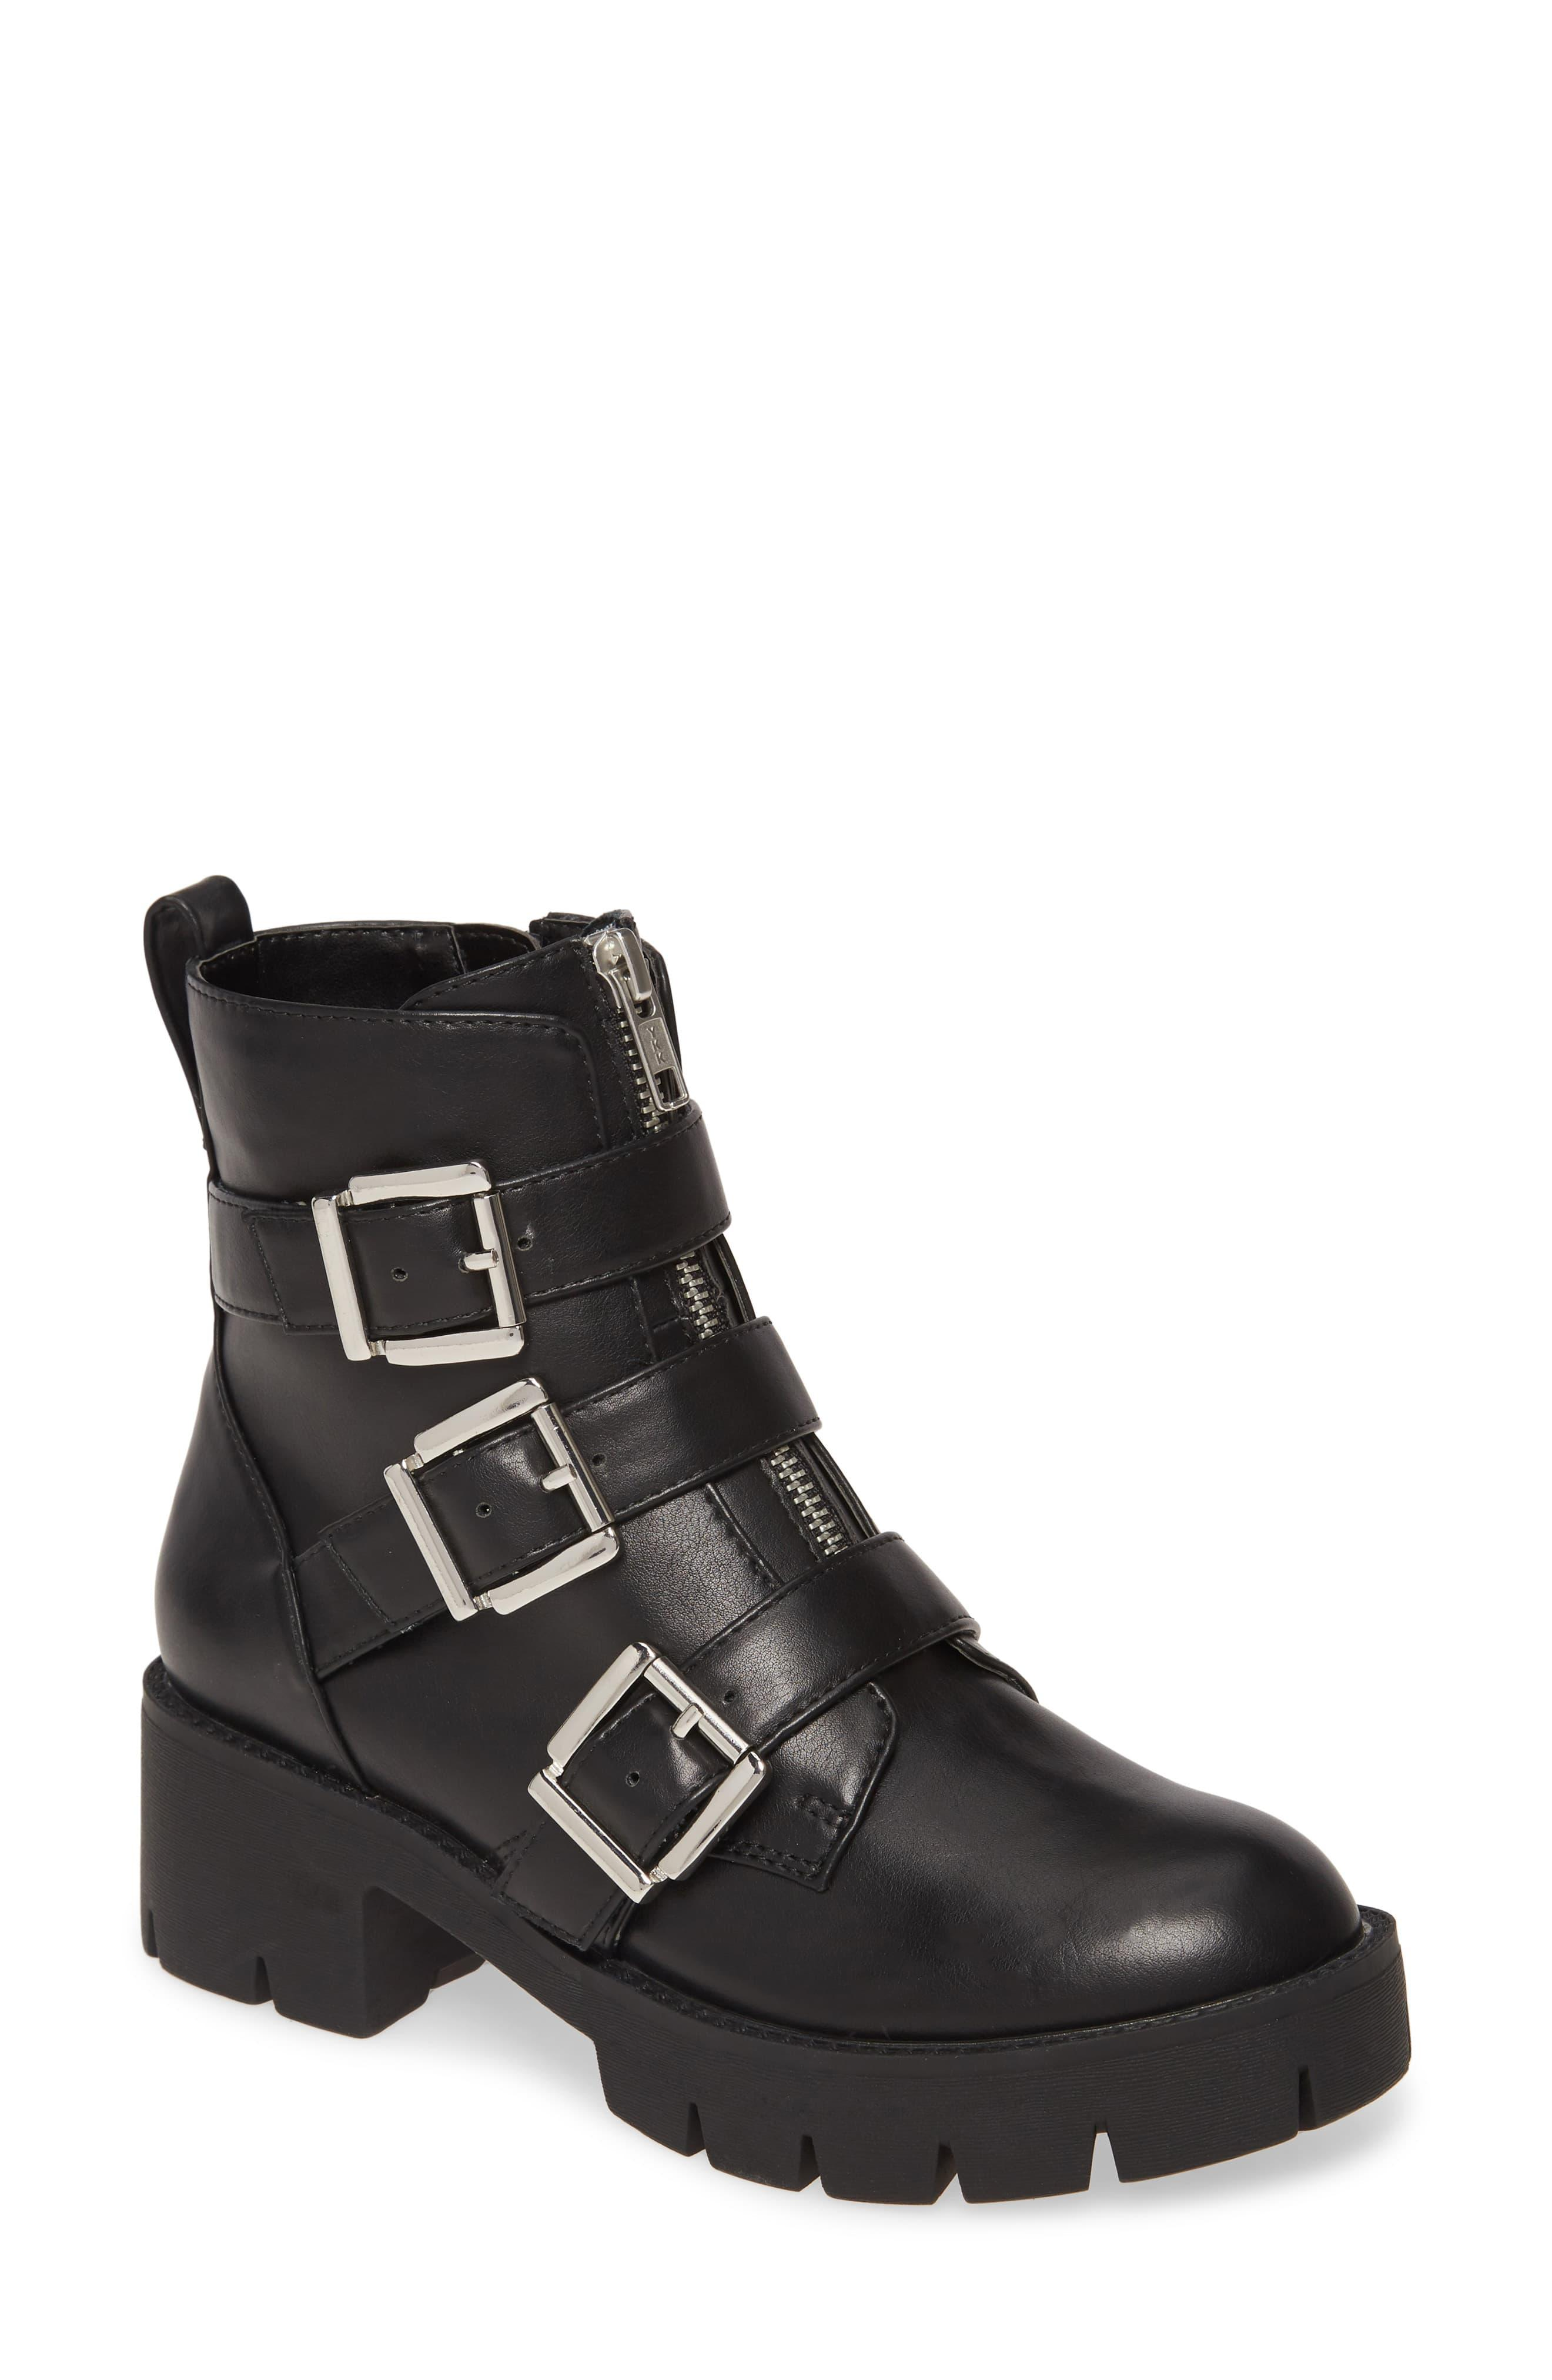 Lilley Girls Black Silver Zip /& Tassel Ankle Boot